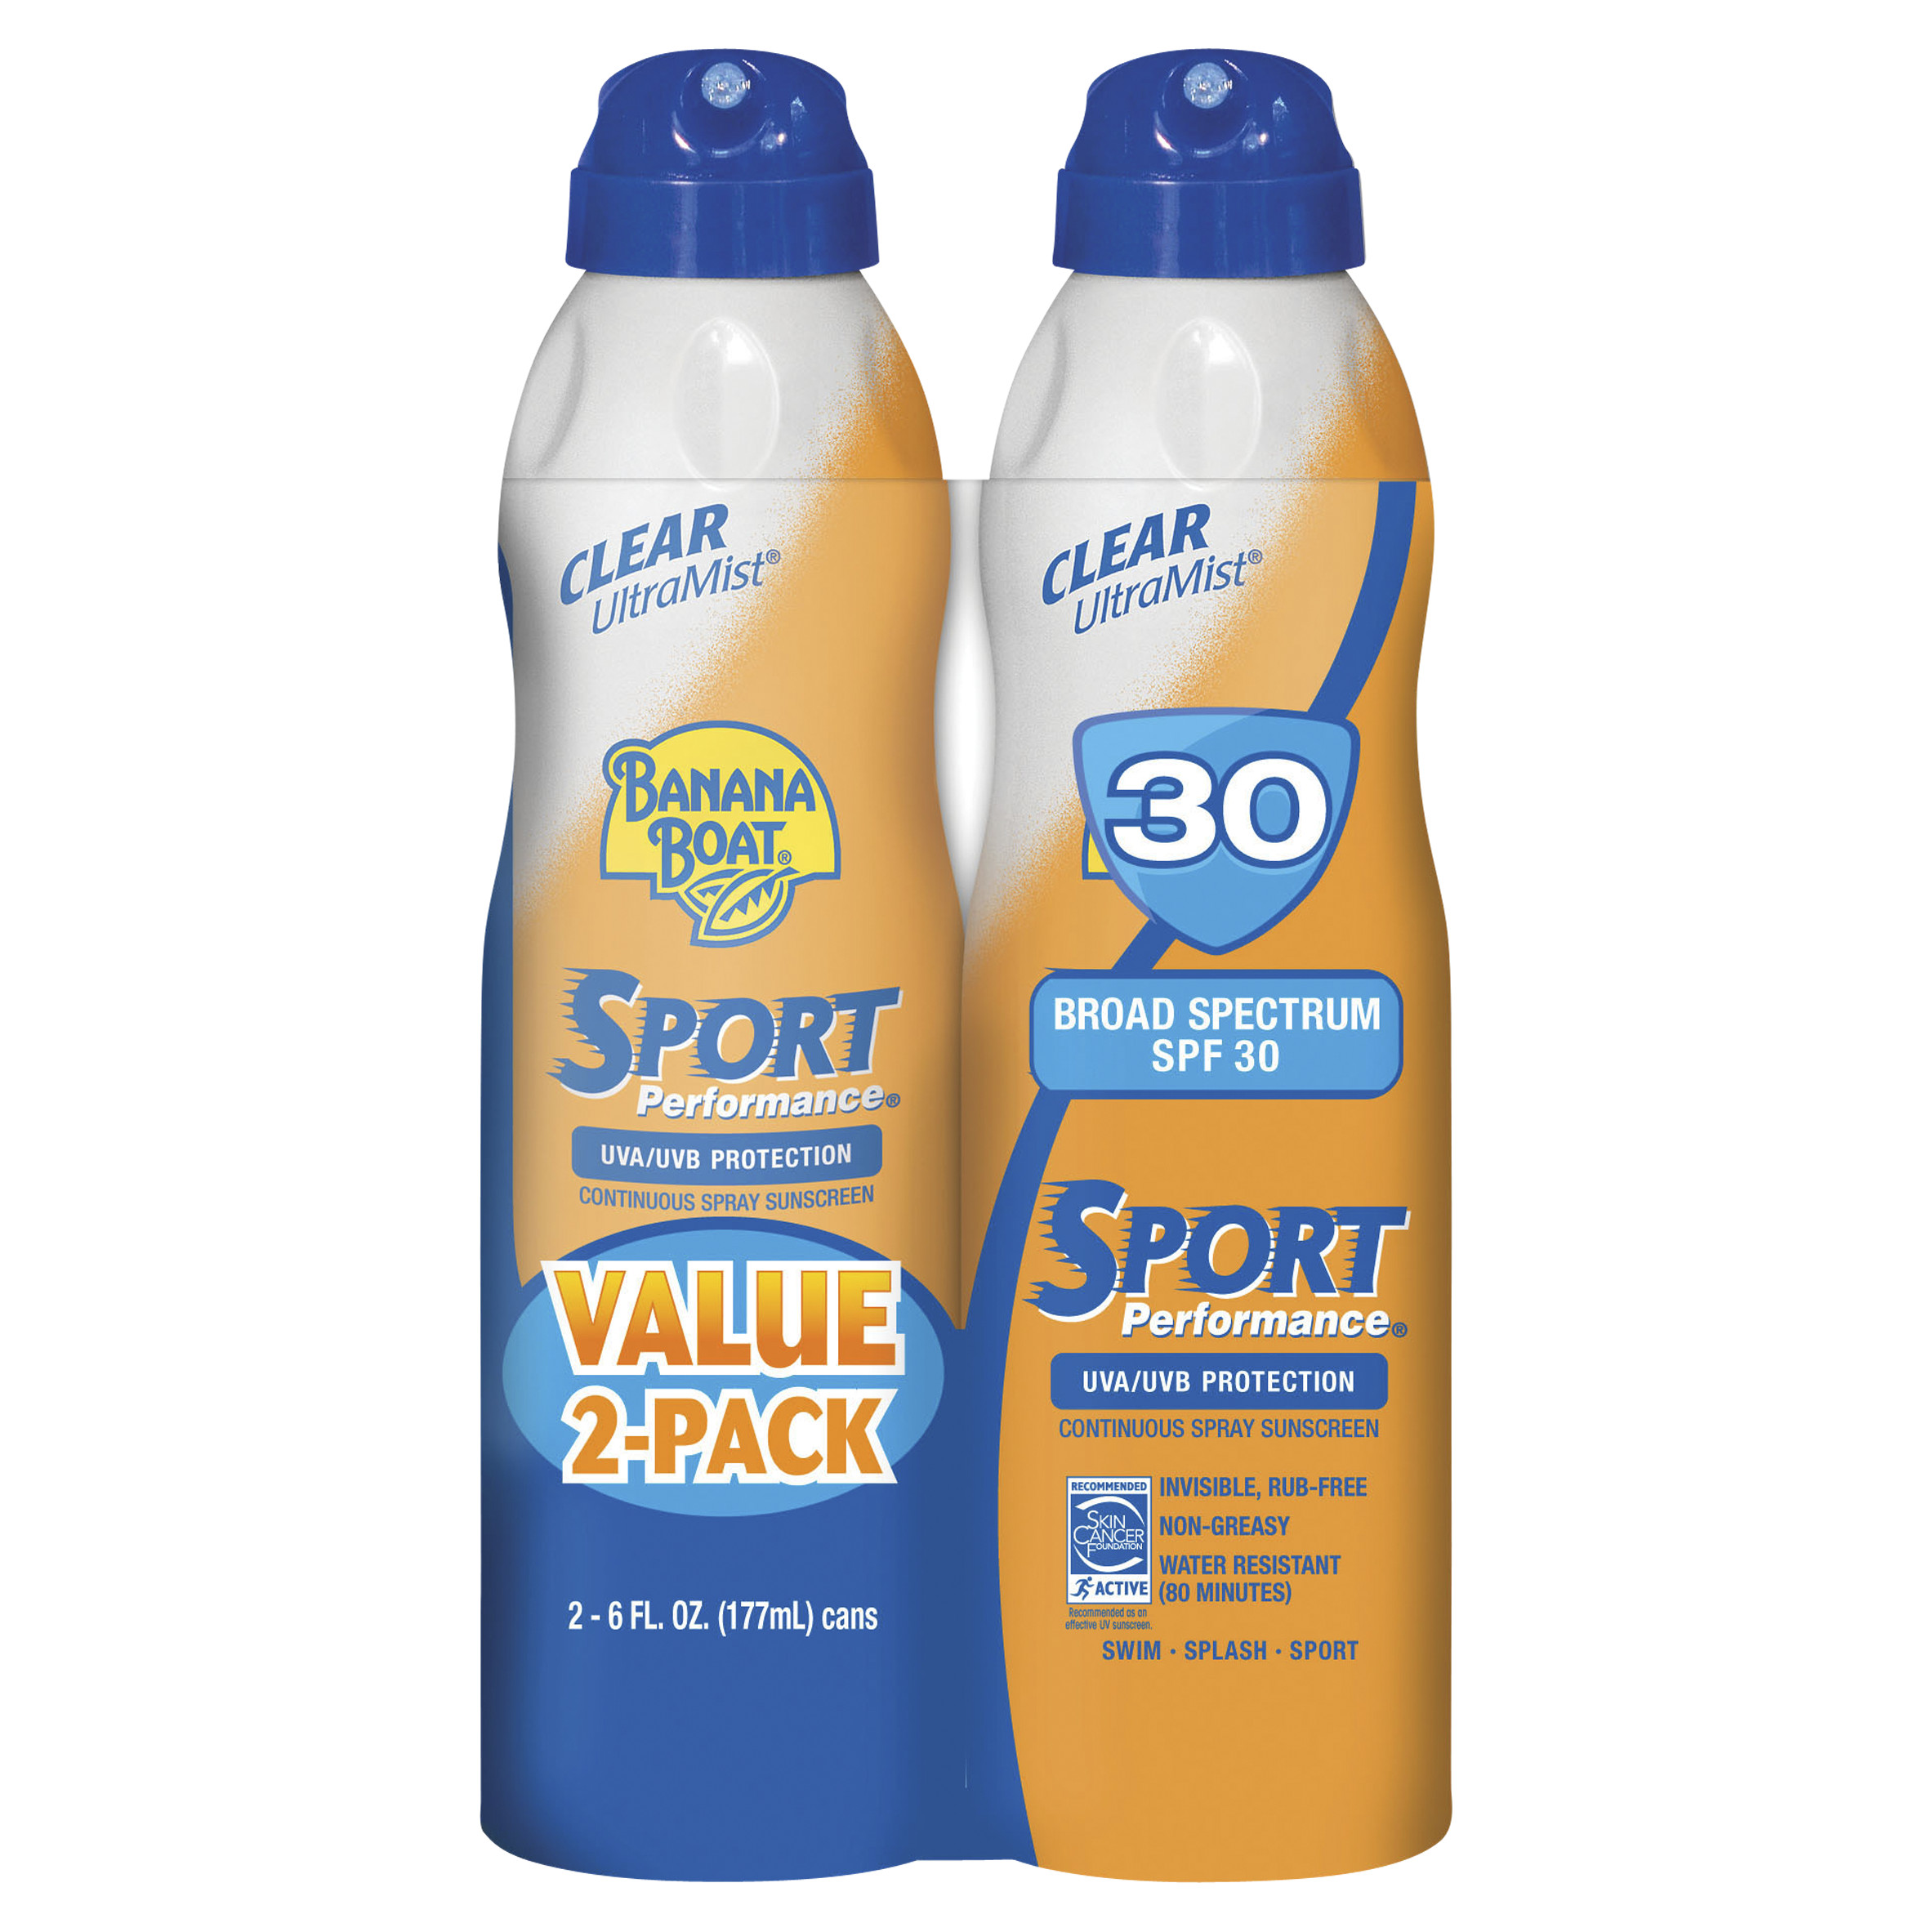 Banana Boat Sport Performance Clear Spray Sunscreen, Broad Spectrum SPF 30, 6 Oz (Twin Pack)